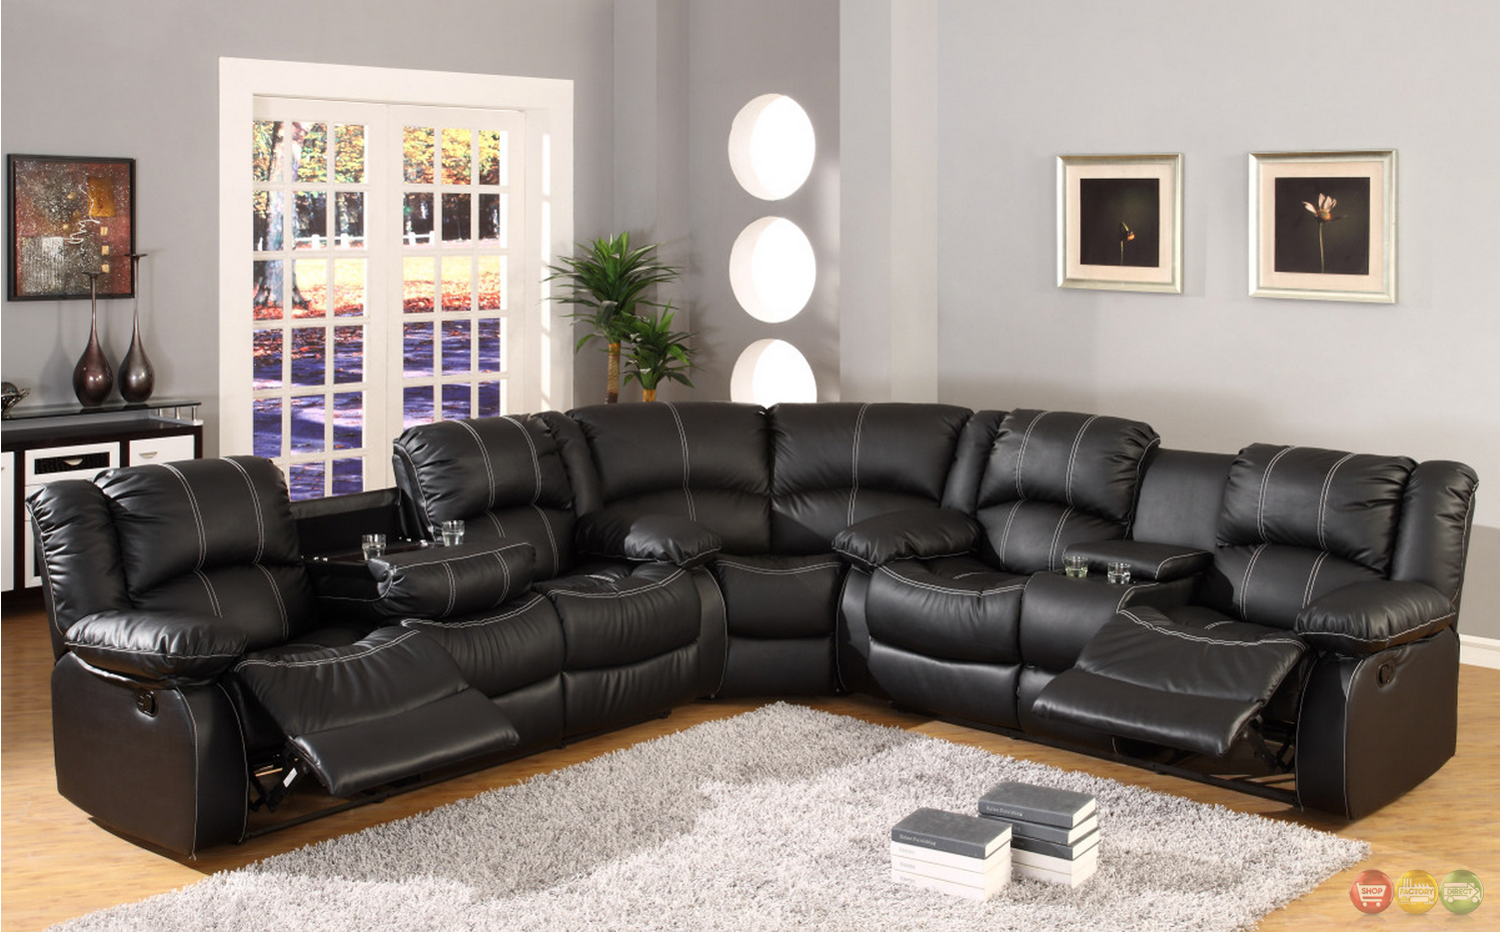 Black Faux Leather Reclining Motion Sectional Sofa w/ Storage ...